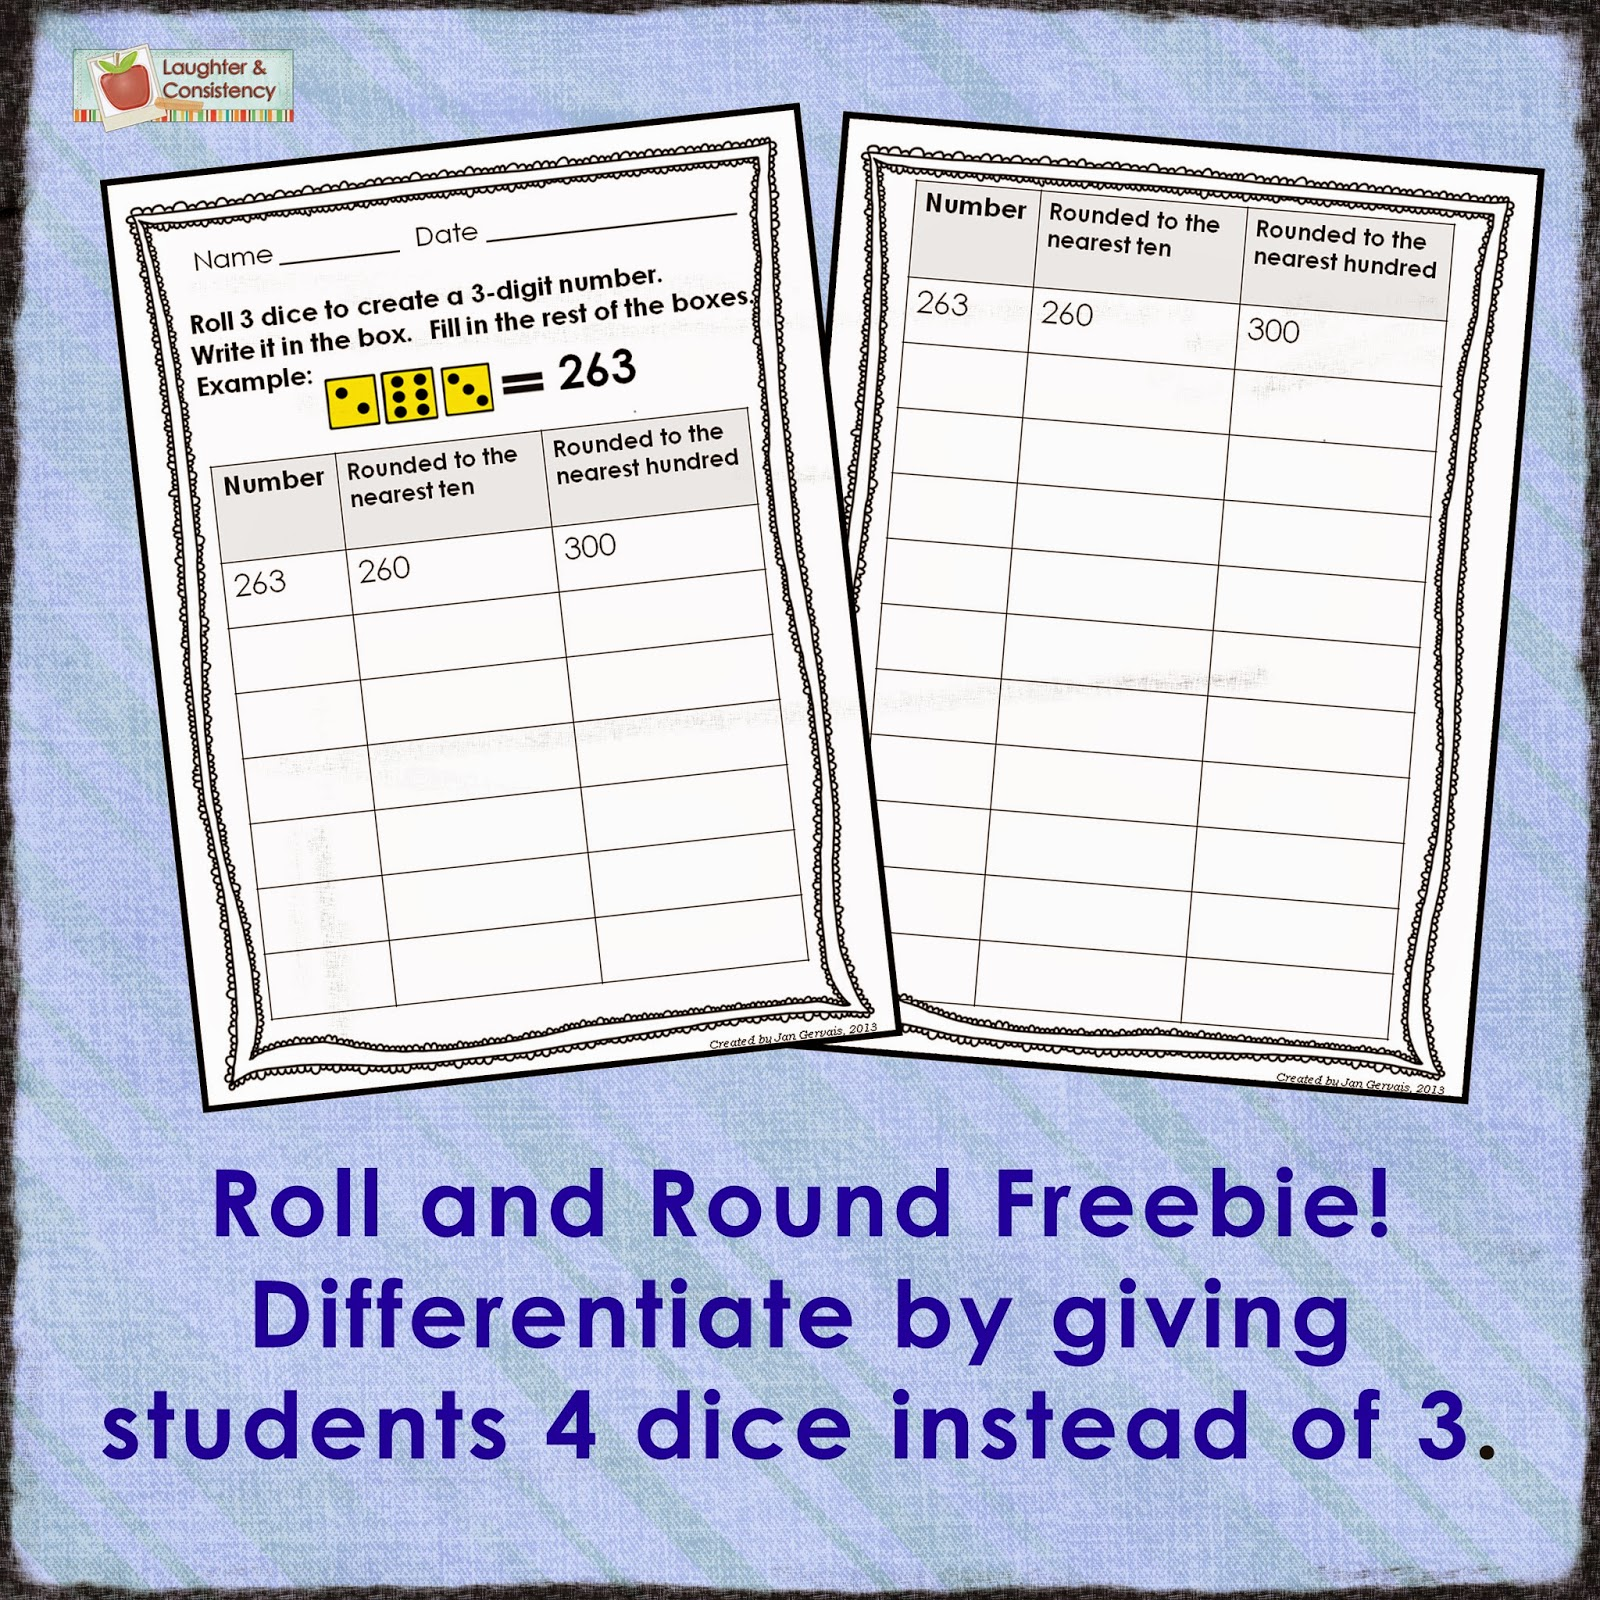 Laughter And Consistency 3rd Grade Place Value With Freebies